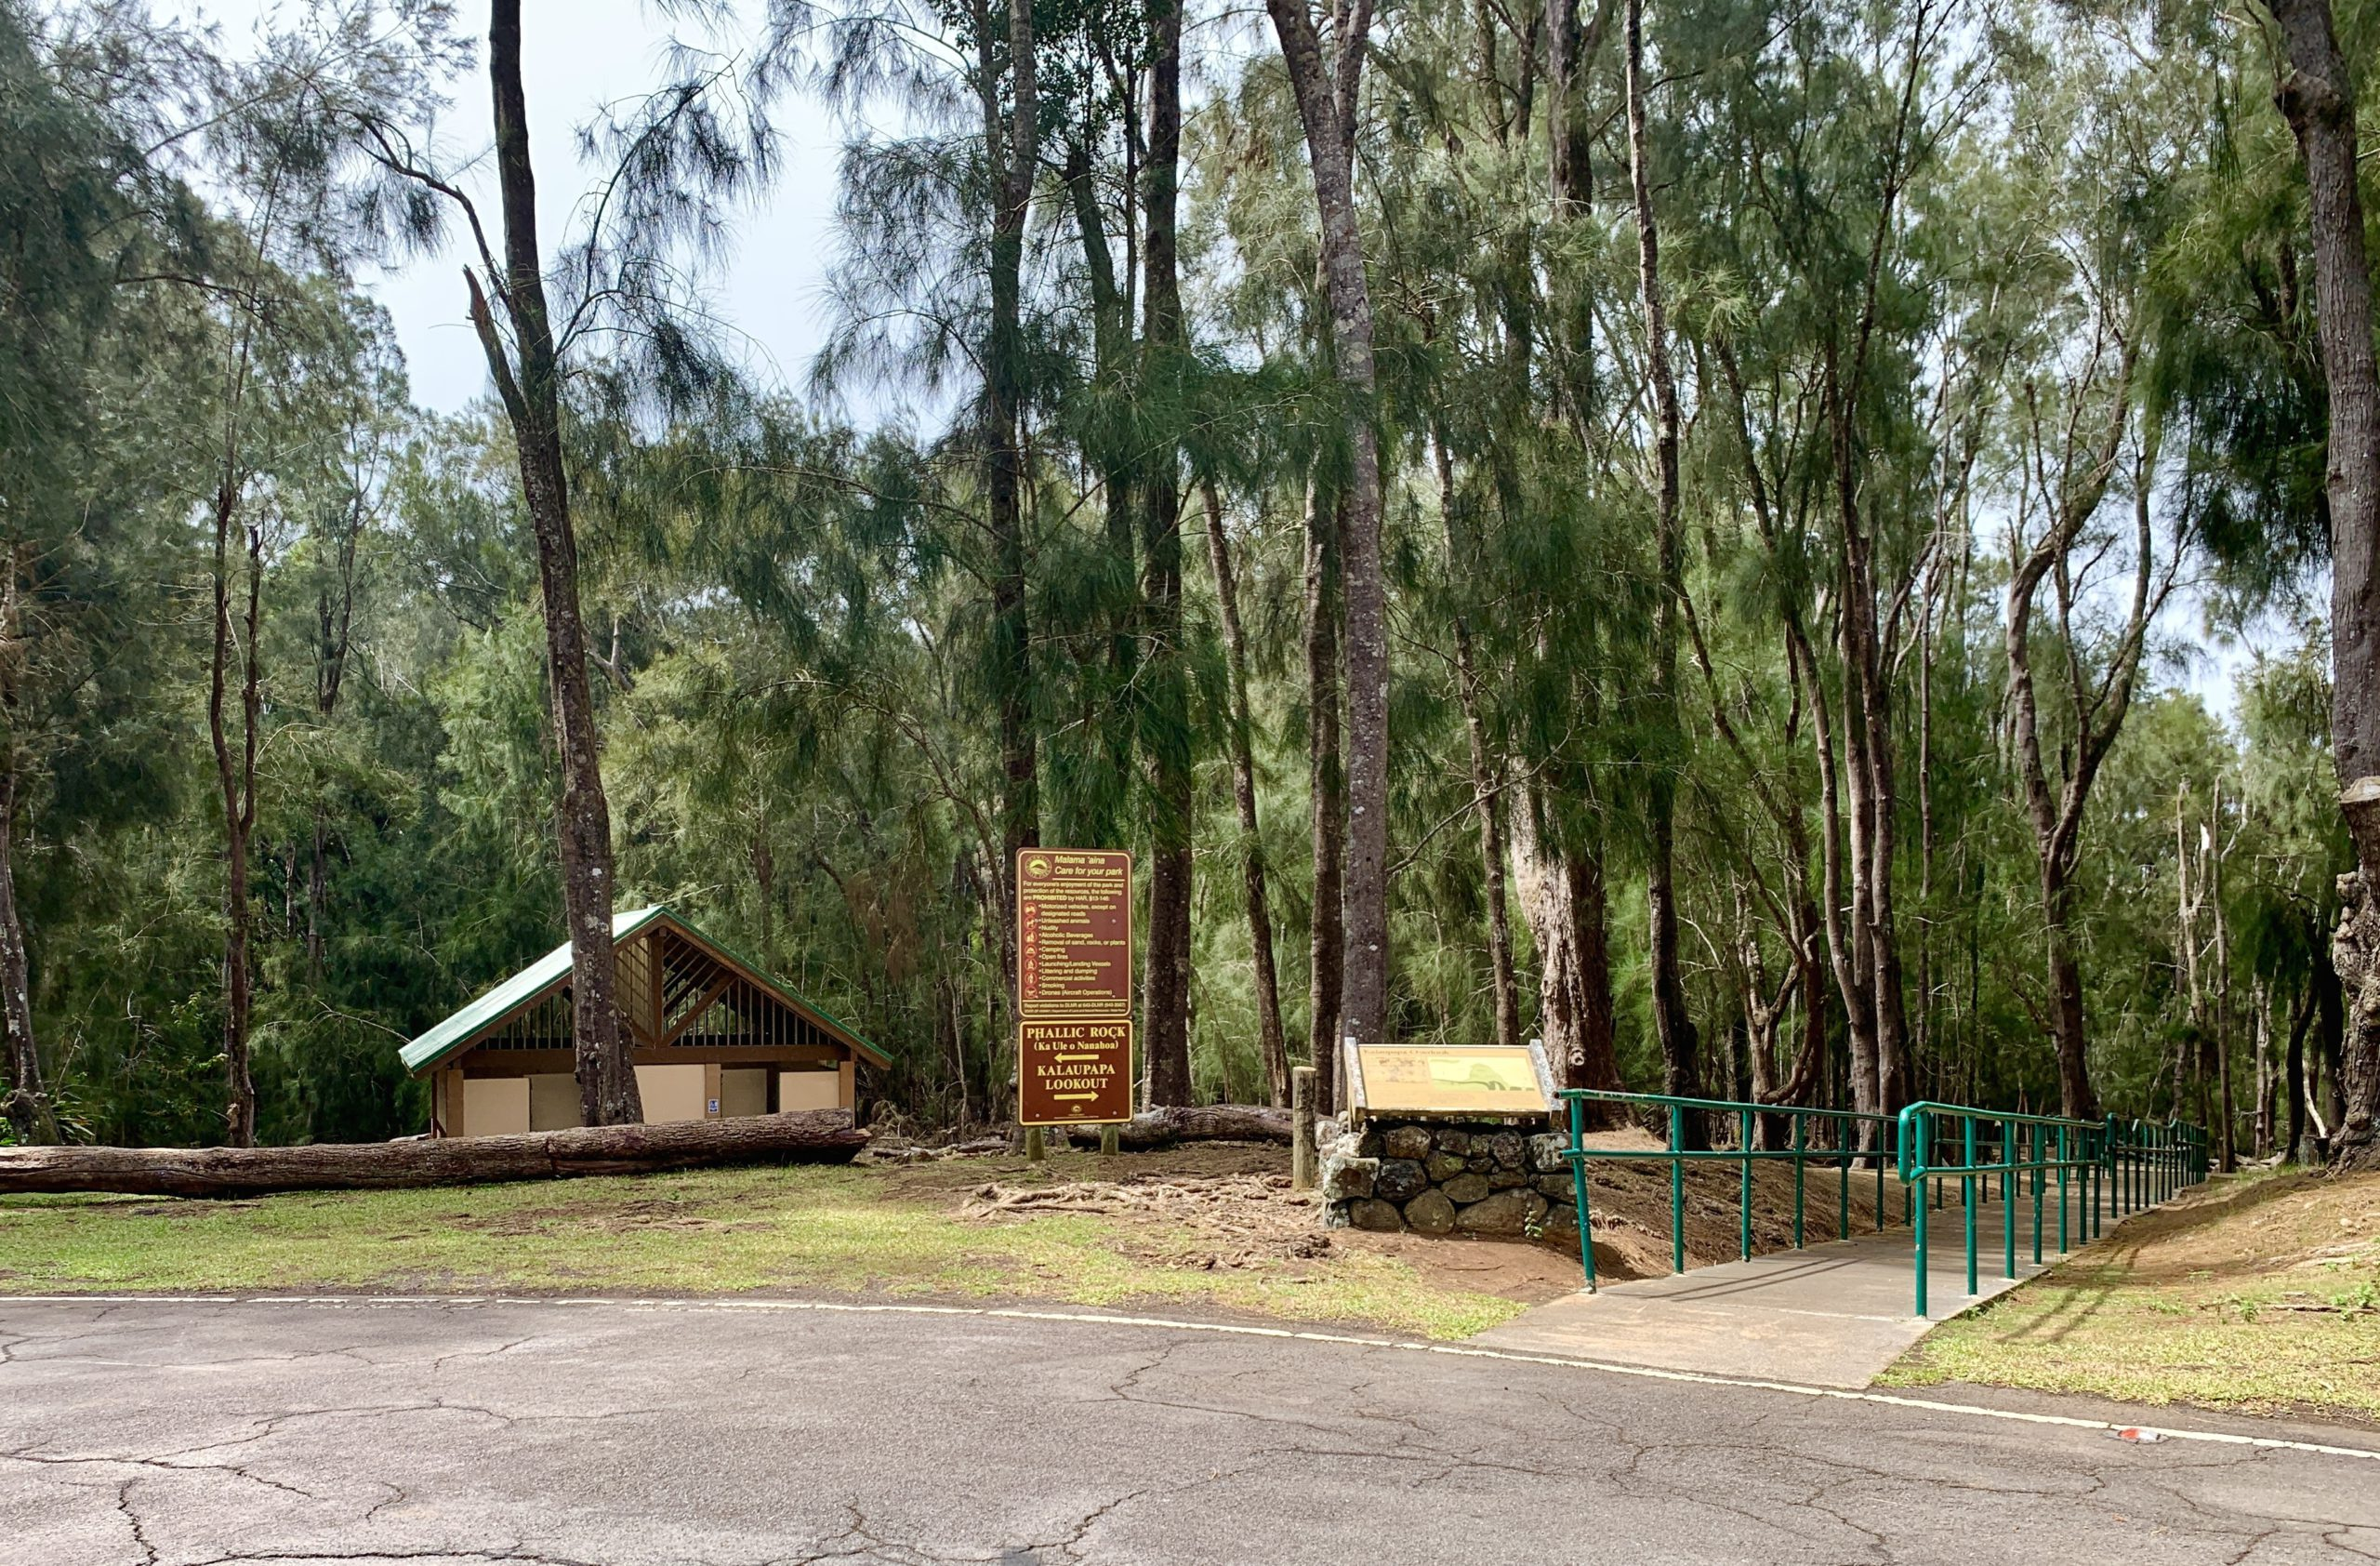 Woman Disappears at Pala'au Park